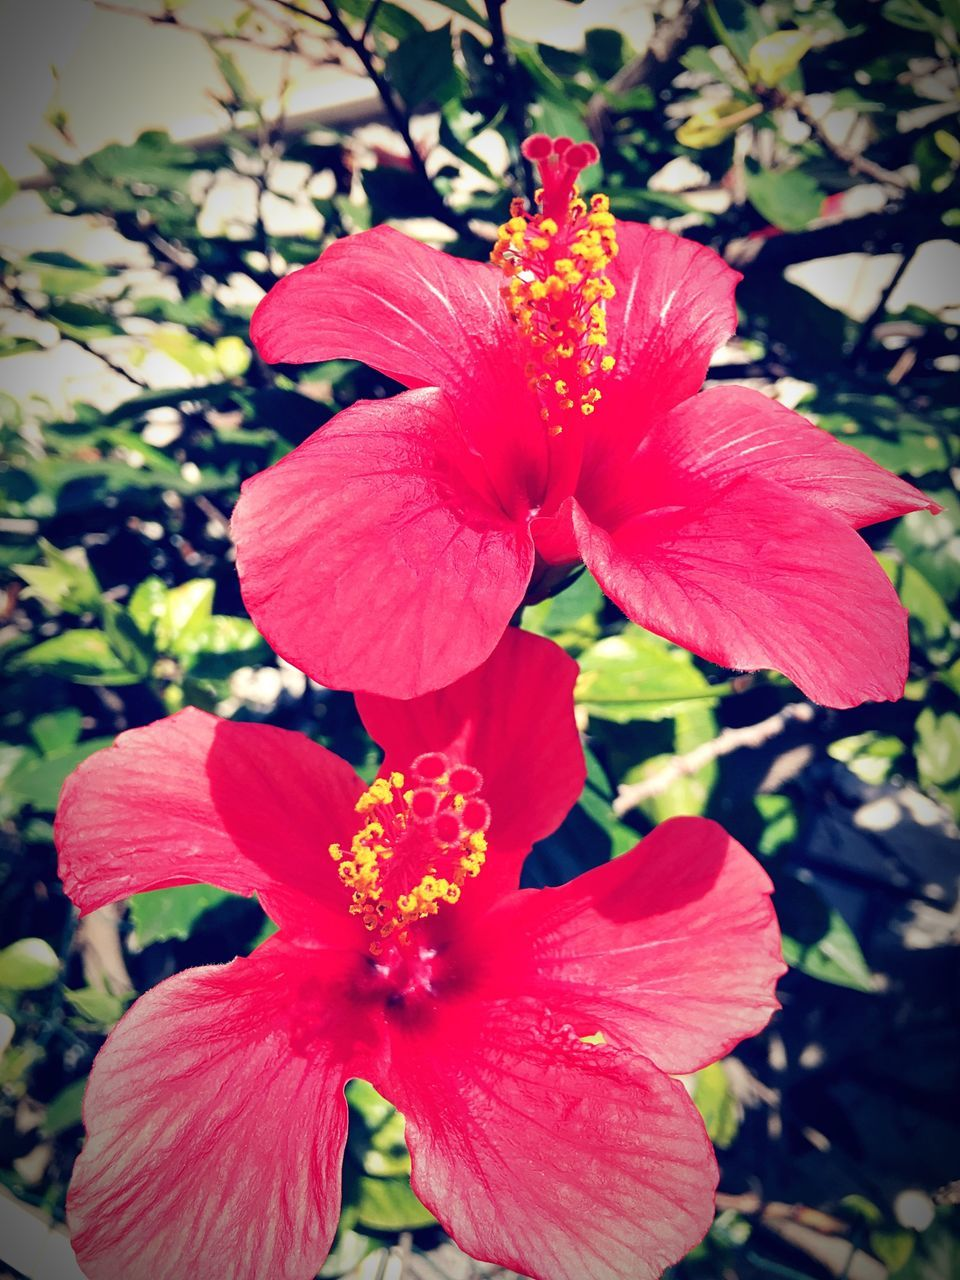 flower, petal, beauty in nature, fragility, nature, flower head, growth, freshness, plant, hibiscus, blooming, day, no people, outdoors, red, stamen, close-up